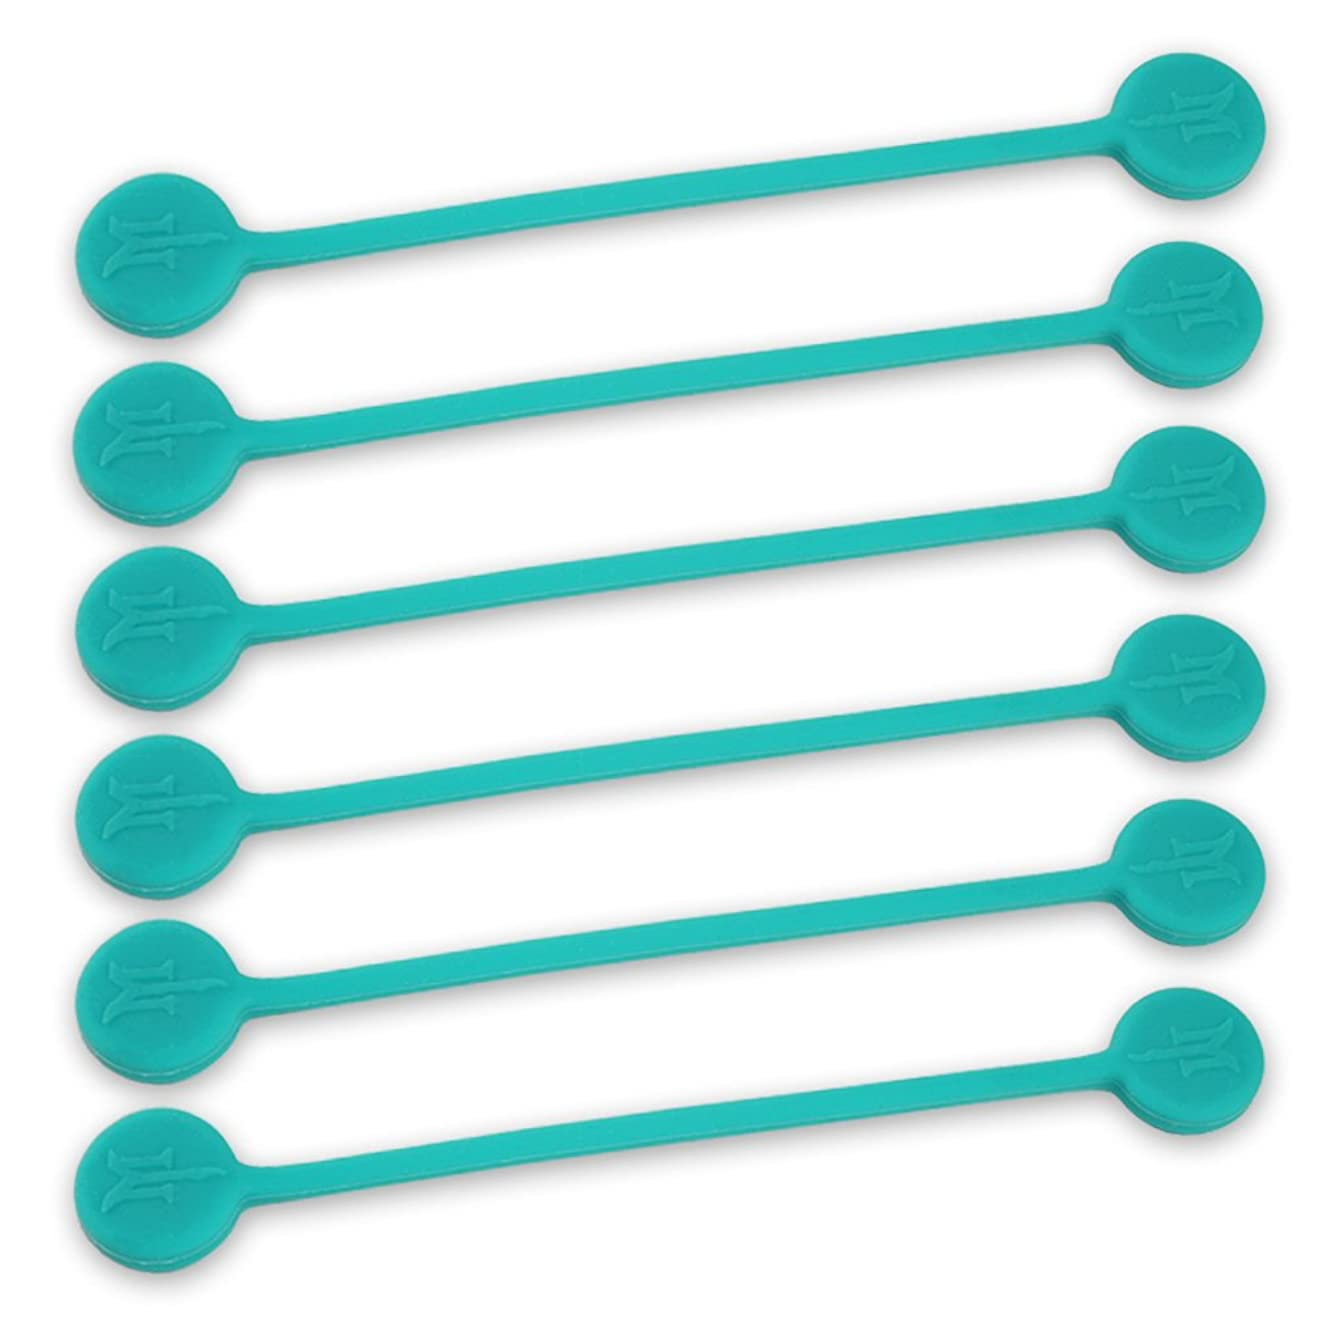 TwistieMag Strong Magnetic Twist Ties - The Tropical Ocean Blue Collection - Turquoise 6 Pack - Super Powerful Solution for Cable Management, Hanging & Holding Stuff, Fidgeting, Or Just for Fun!